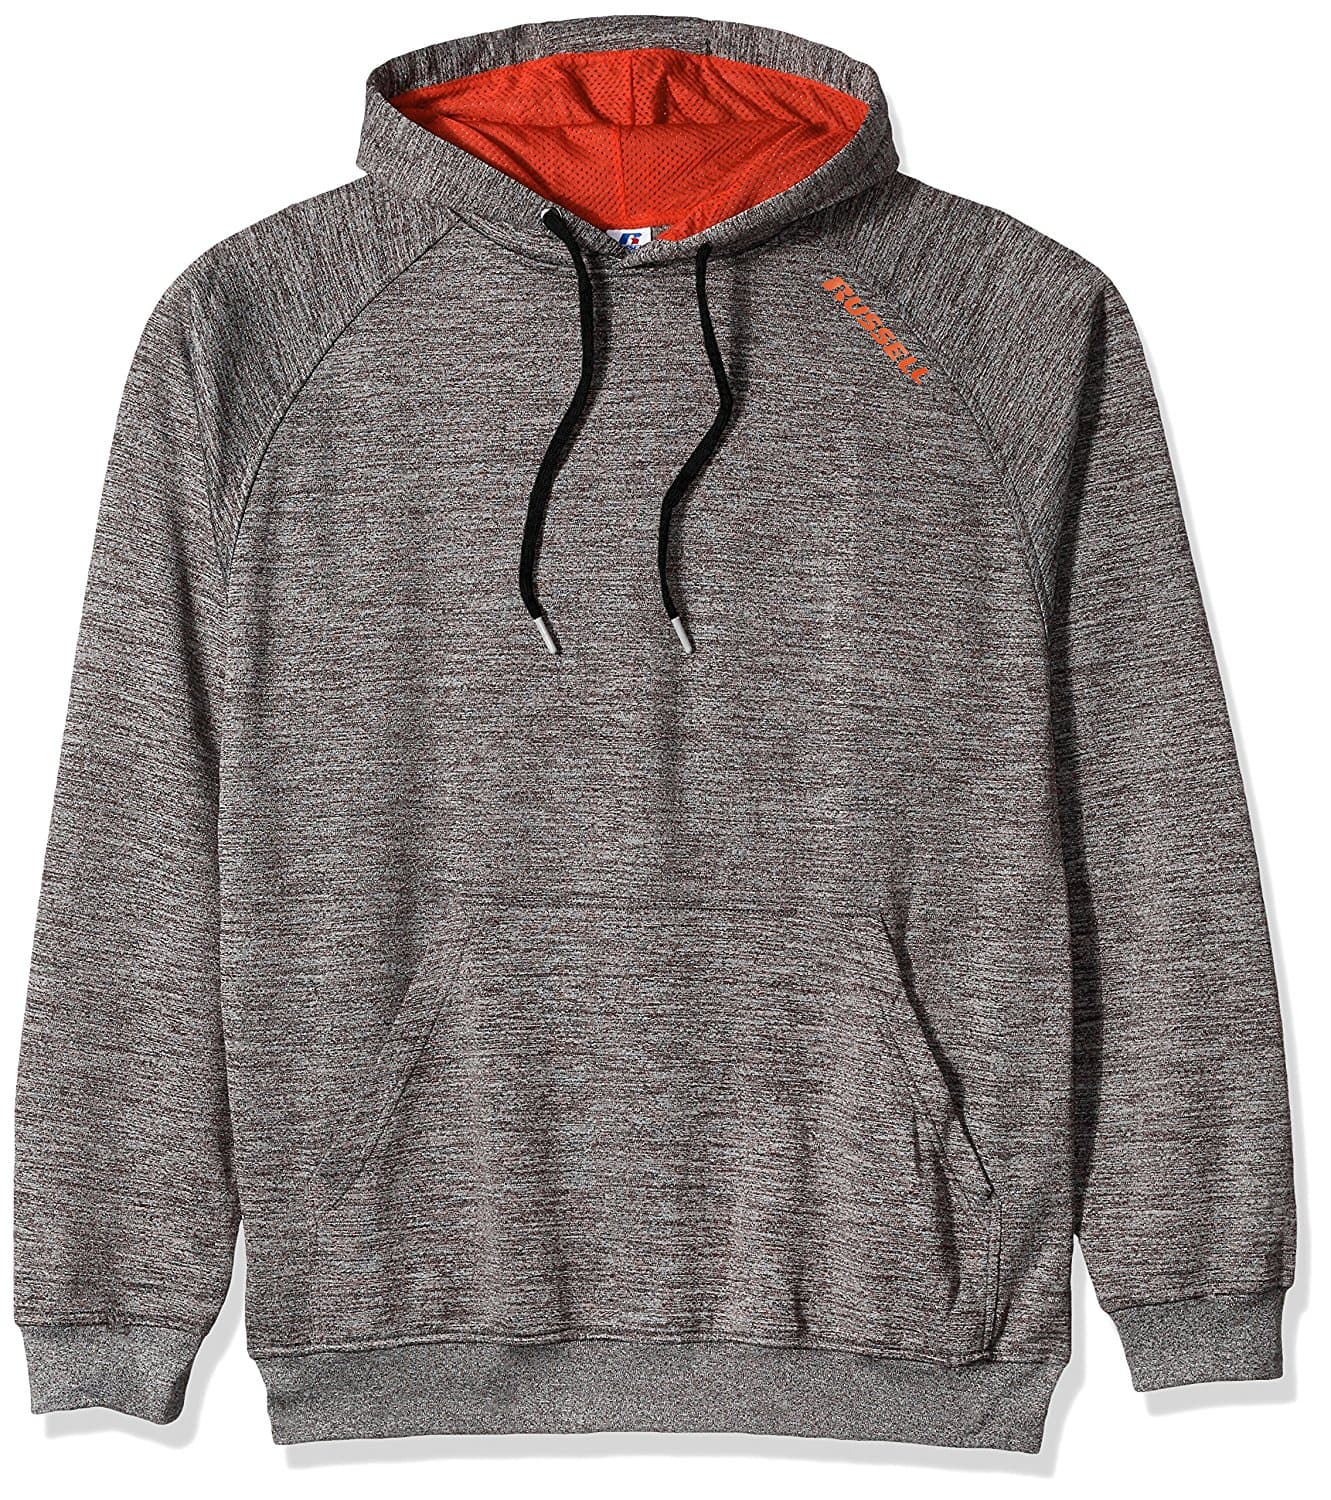 Russell Athletic Men's Big and Tall Long Sleeve Hoodie - L (Tall) - $6.74 @ Amazon.com